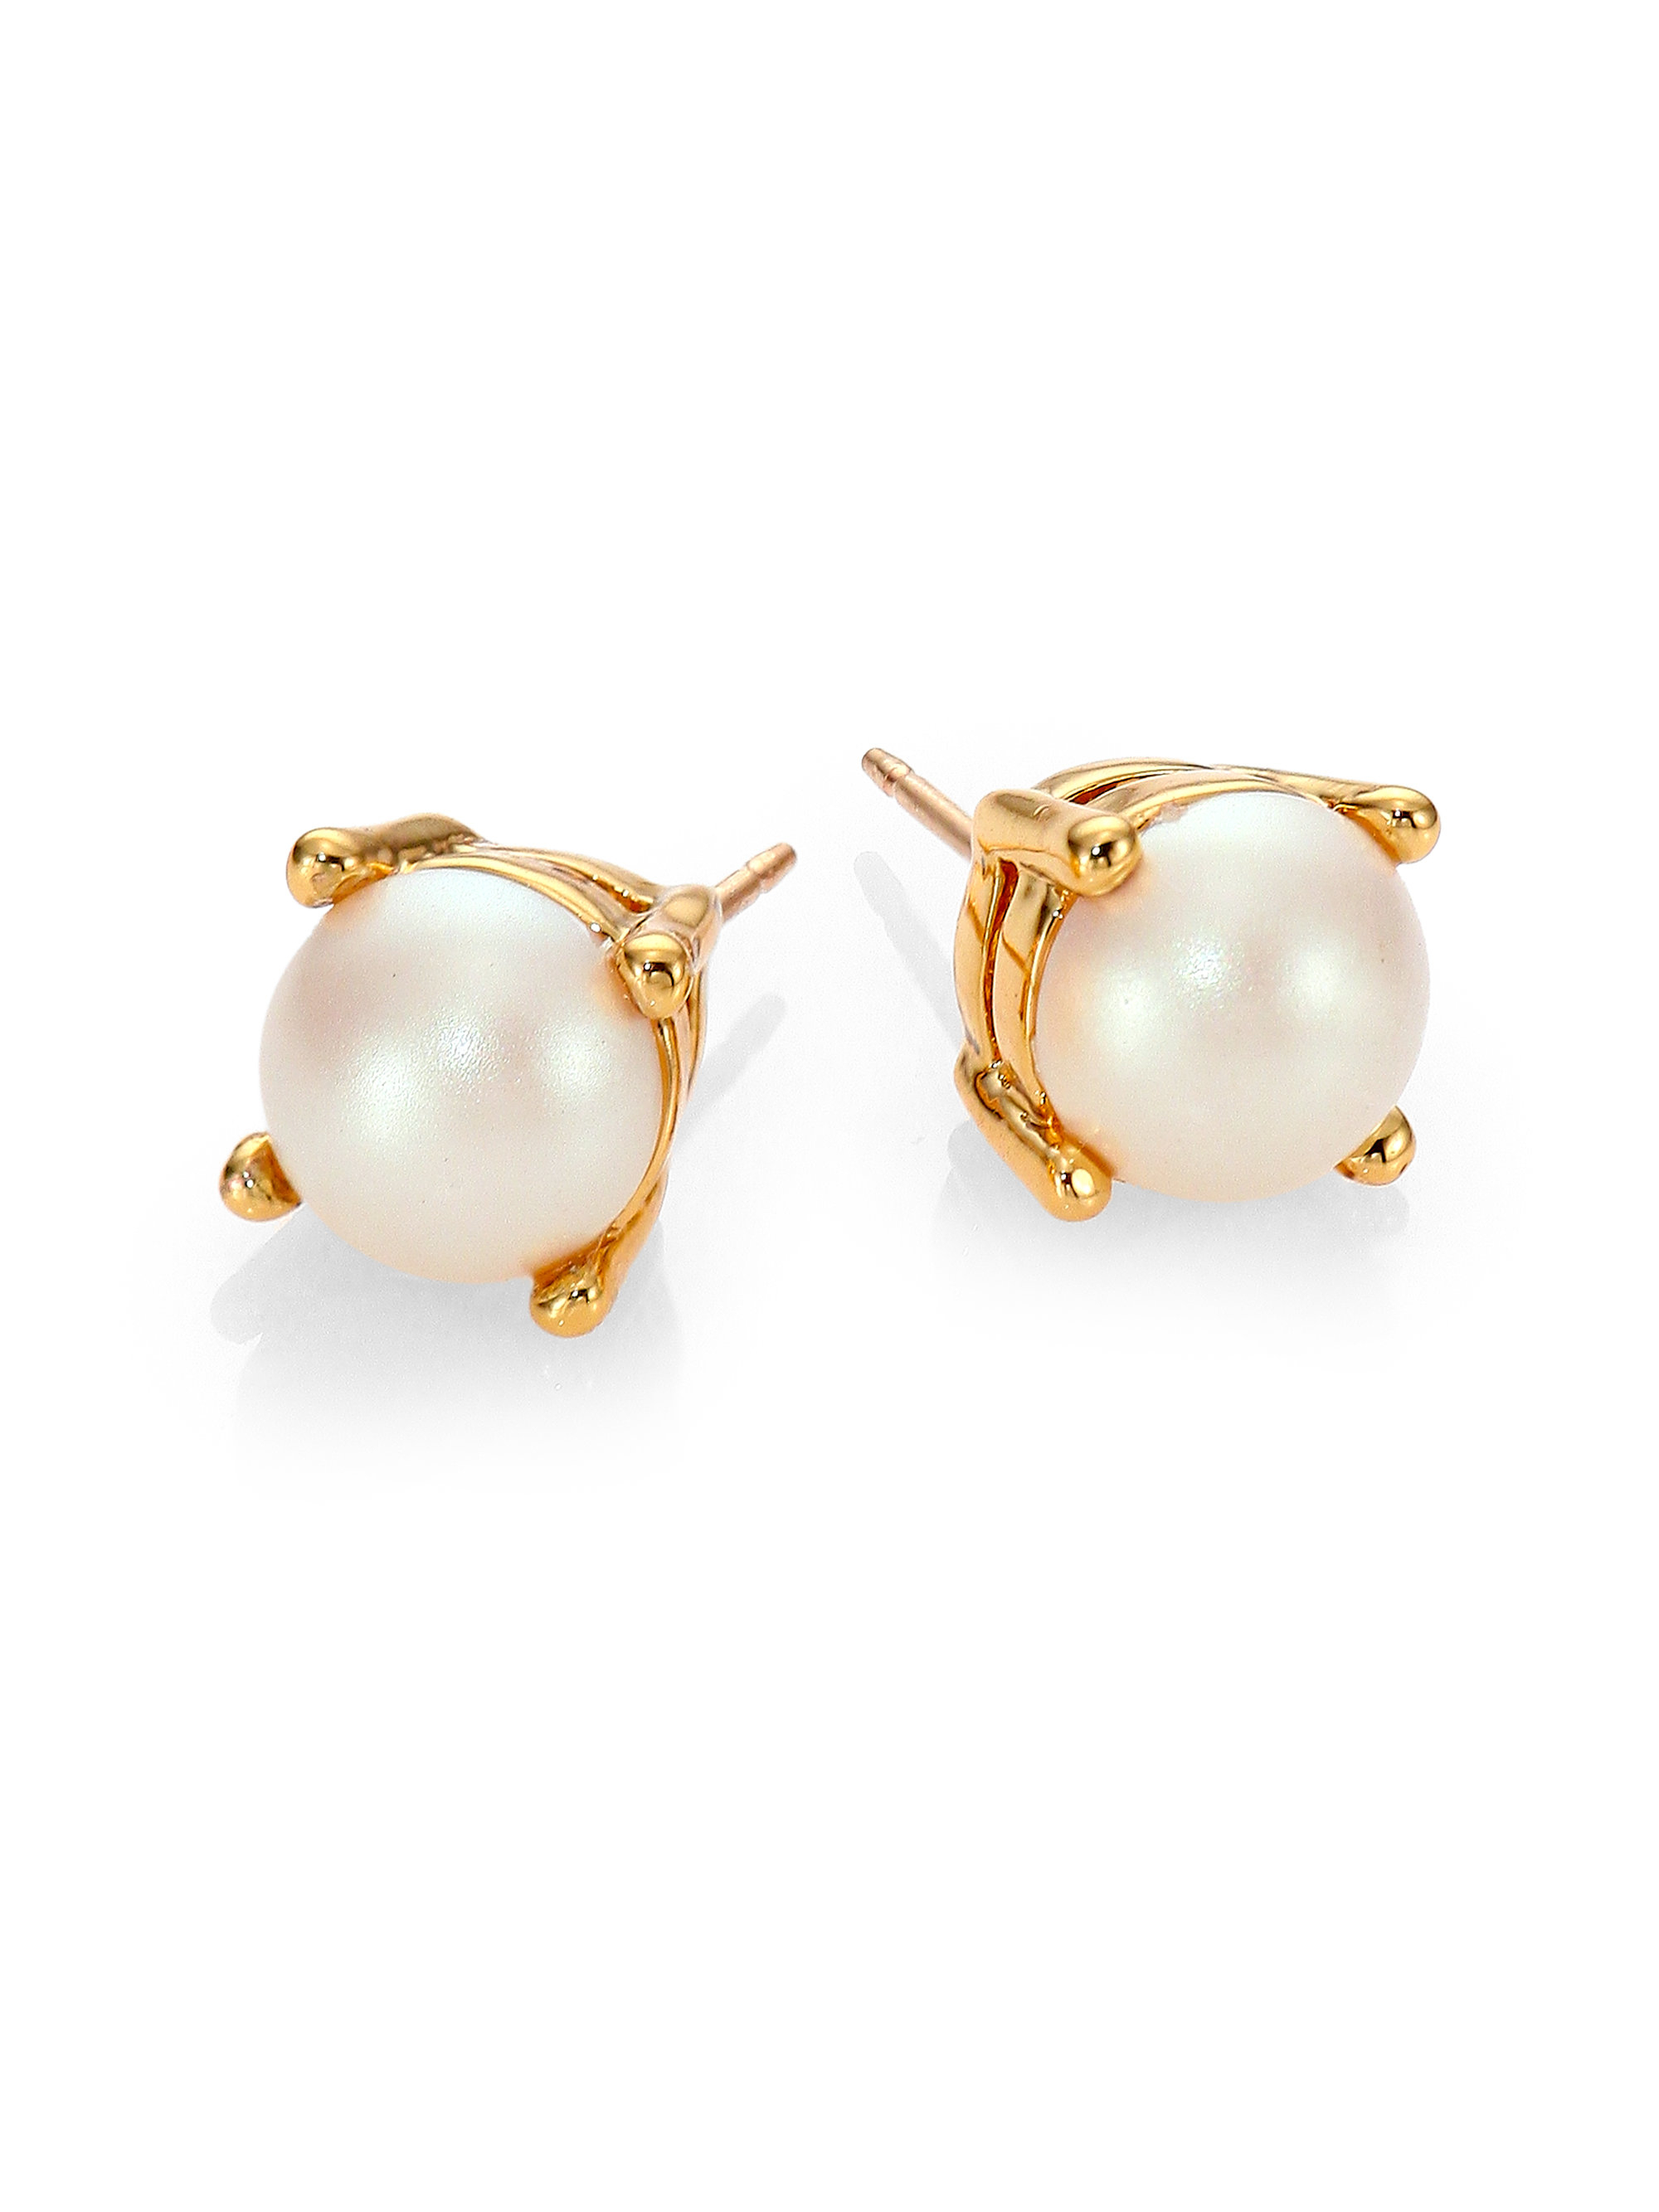 c670d78e0 Kate Spade New York Gold Tone Pavé Imitation Pearl Stud Earrings. Gallery.  Lyst Kate Spade Cueva Rosa Faux Pearl Stud Earrings In White